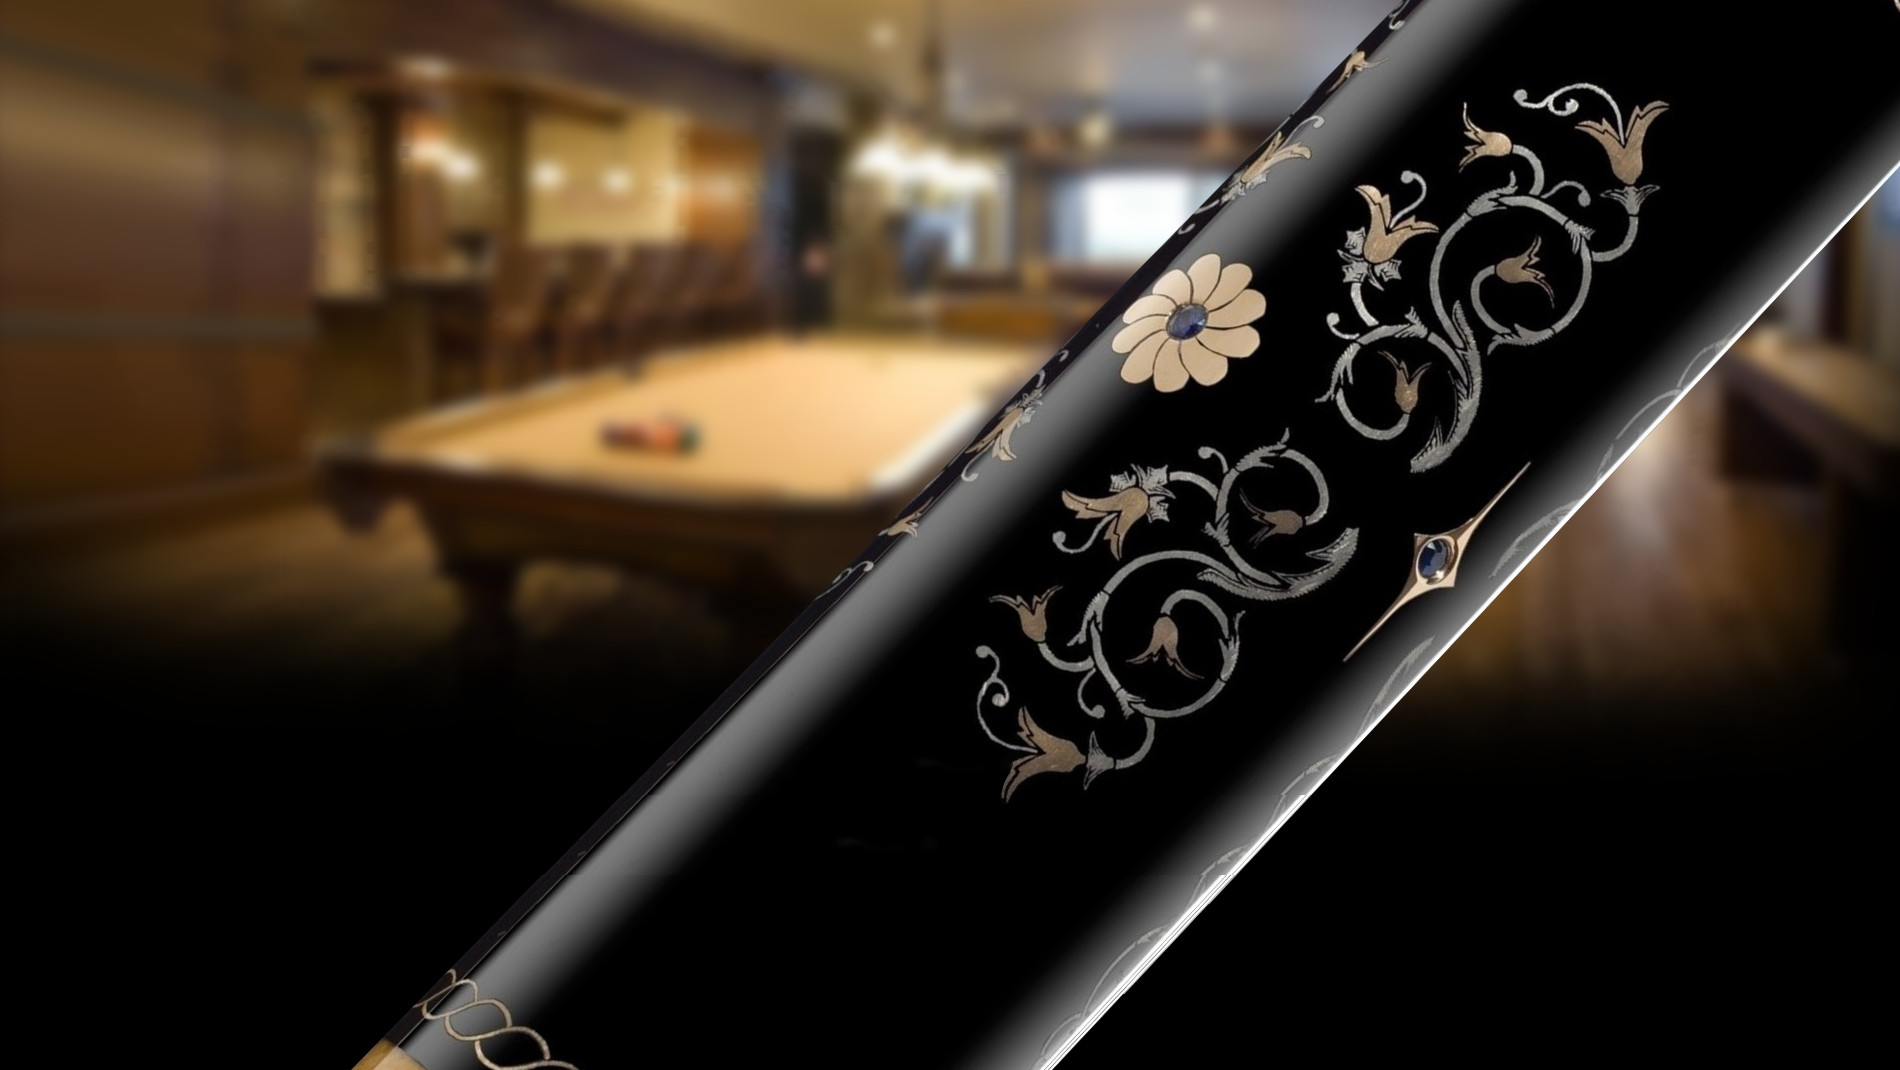 Close-up of the Silver Knights cue with billiard room background.